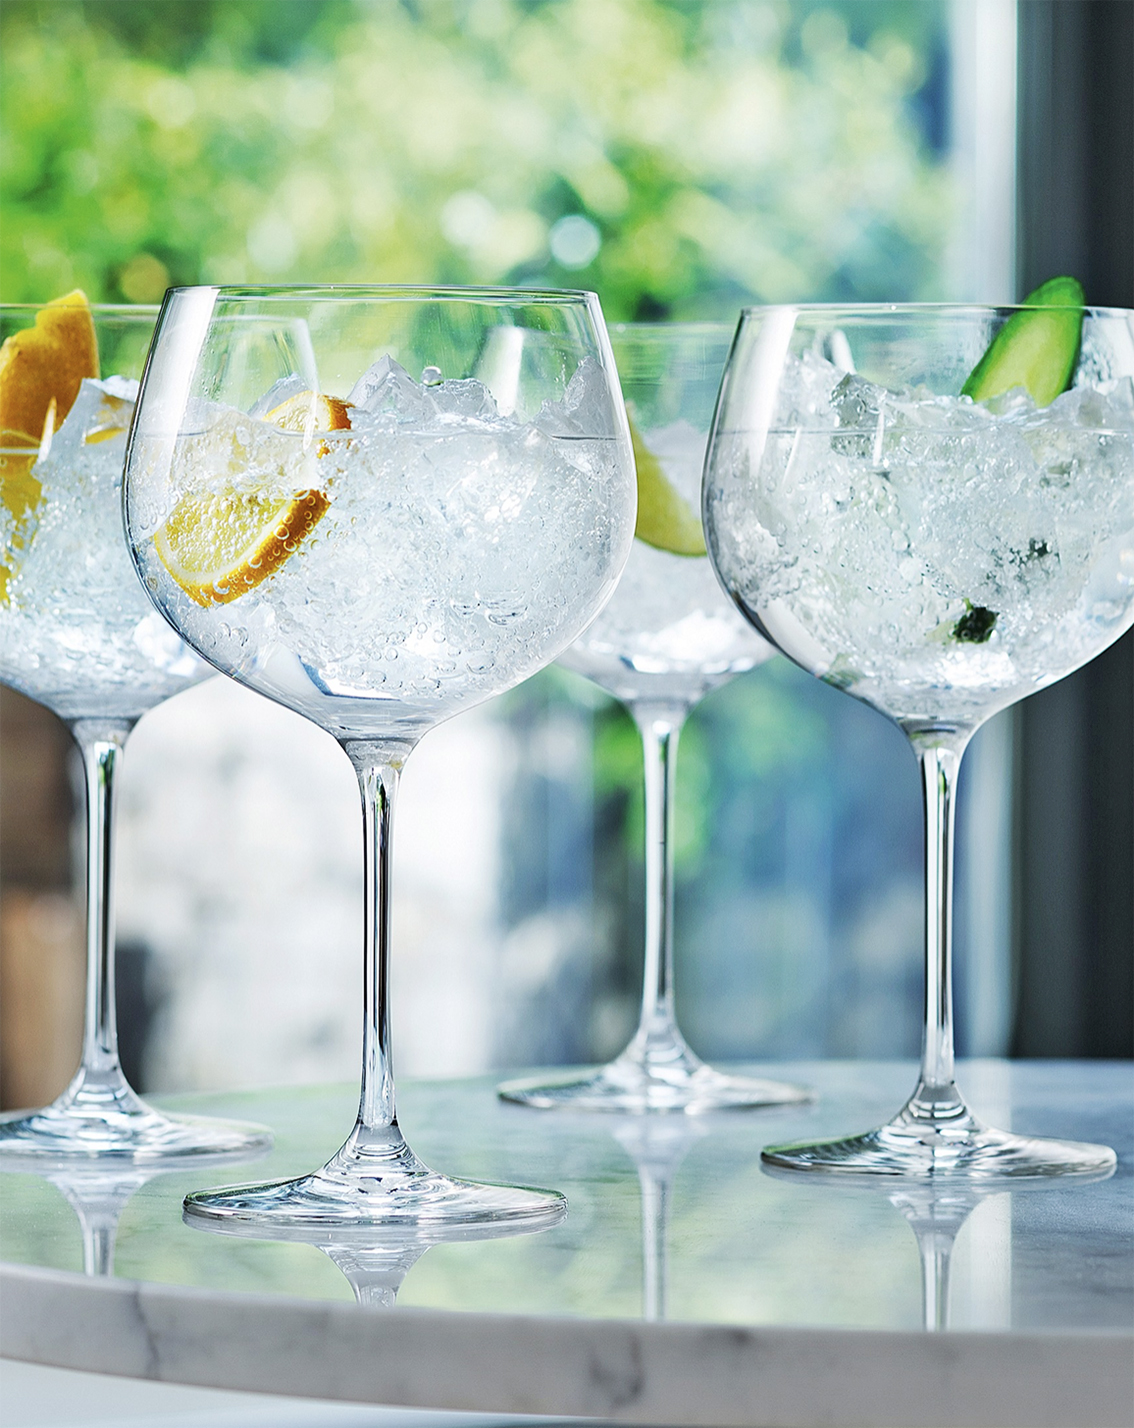 Celebrate with gin in a glass meant for gin & tonic..gin balloon glasses, £30 for 4, LSA